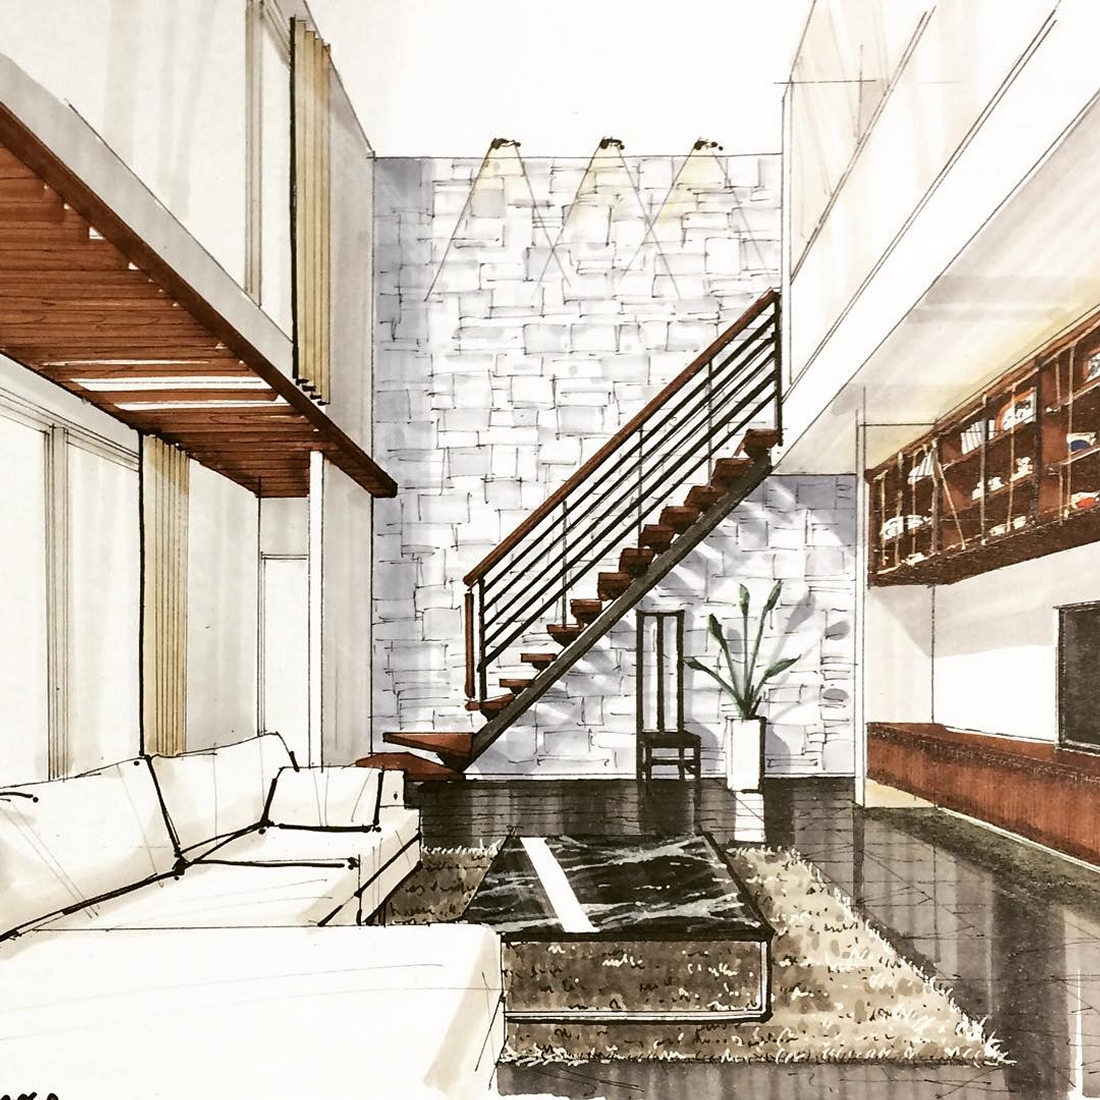 06-Miyacyan-Inspiring-Interior-Design-Drawings-Ideas-www-designstack-co